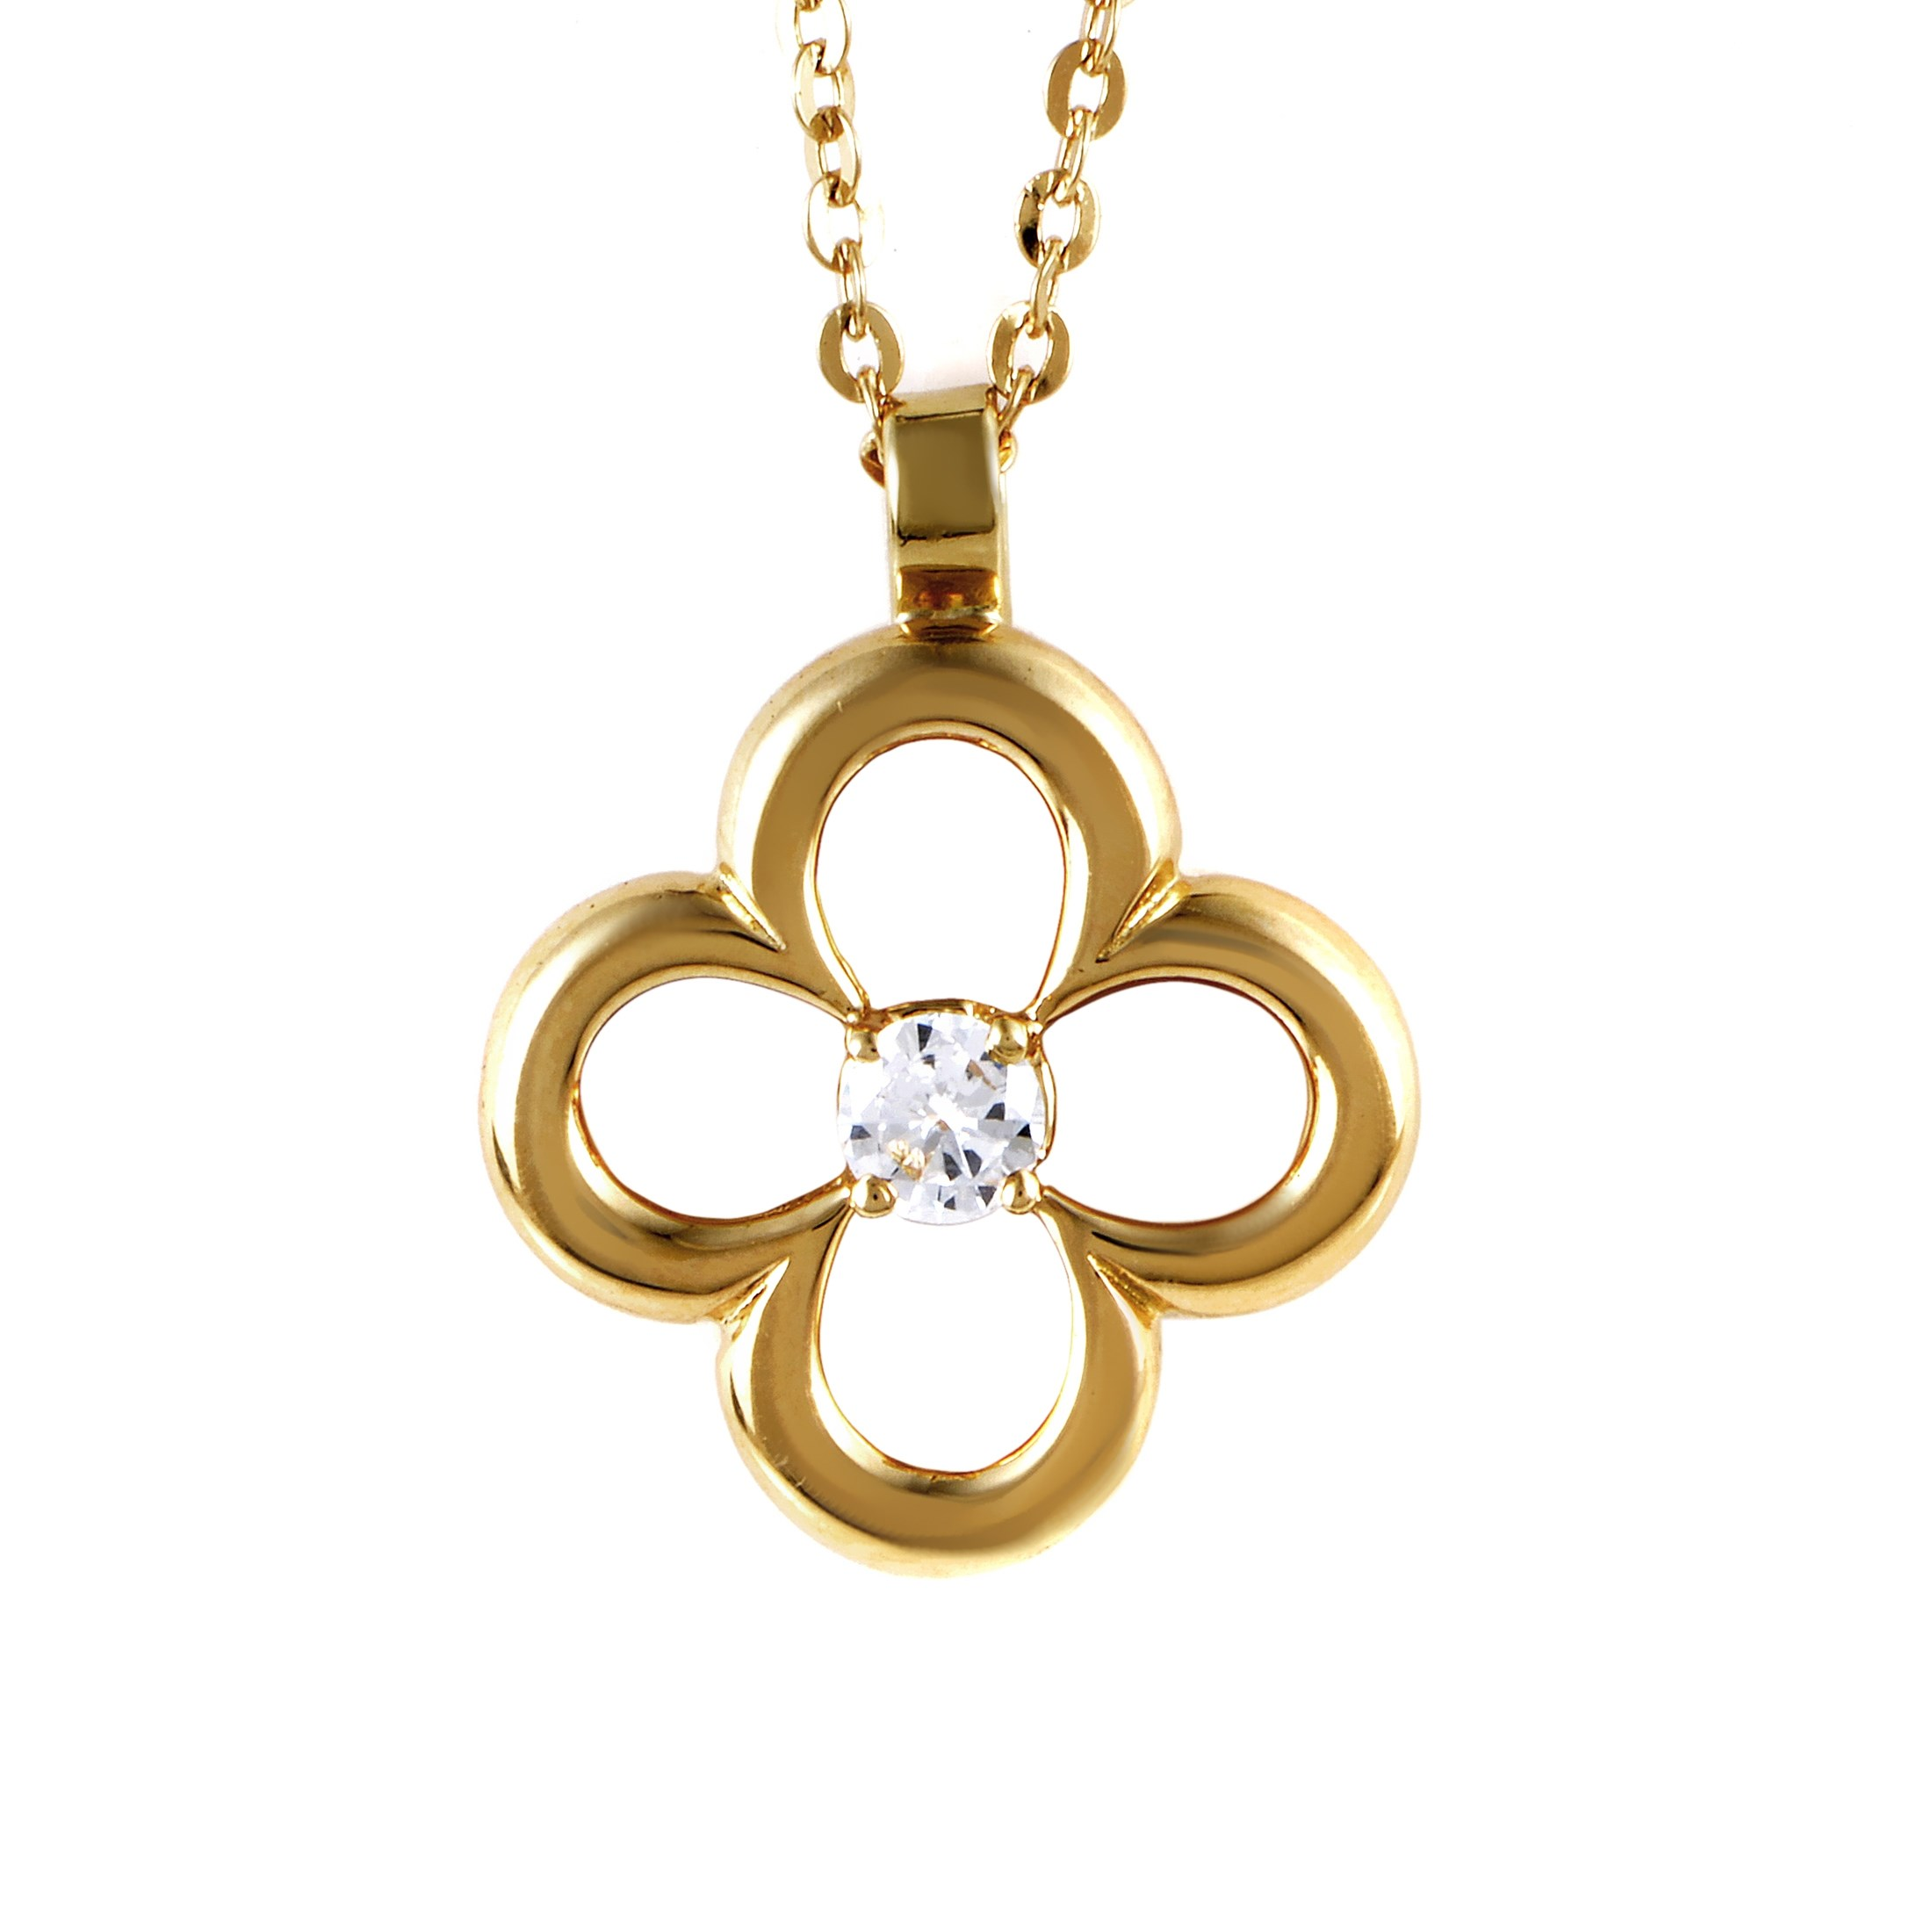 Van Cleef & Arpels Vintage 18K Yellow Gold Diamond Pendant Necklace